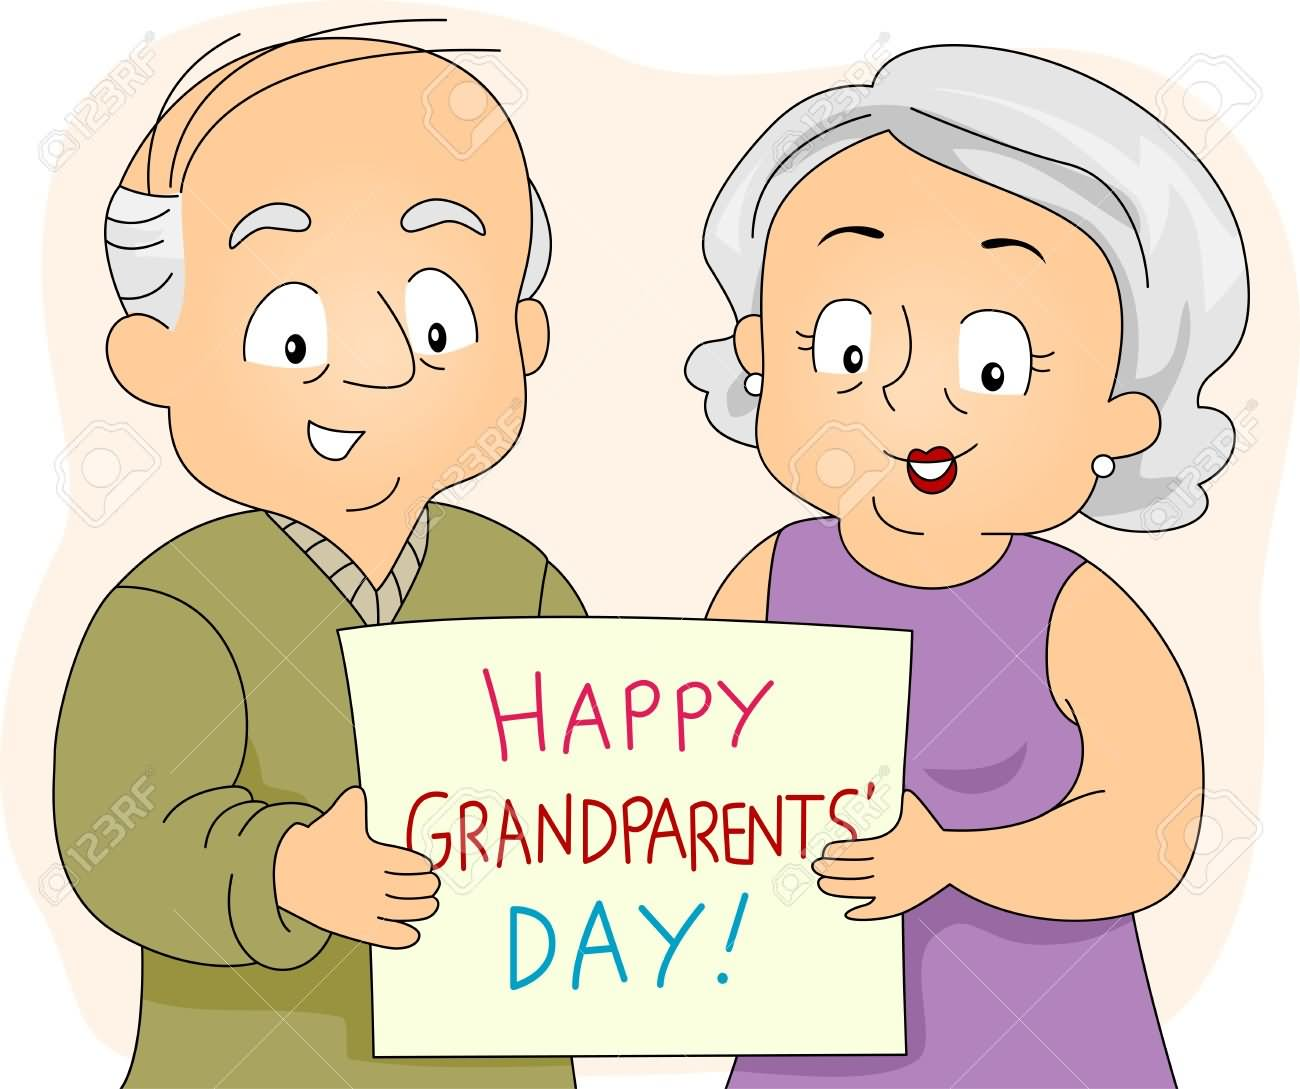 50 best grandparents day wish pictures and images rh askideas com grandparents clipart black and white grandparents clipart images